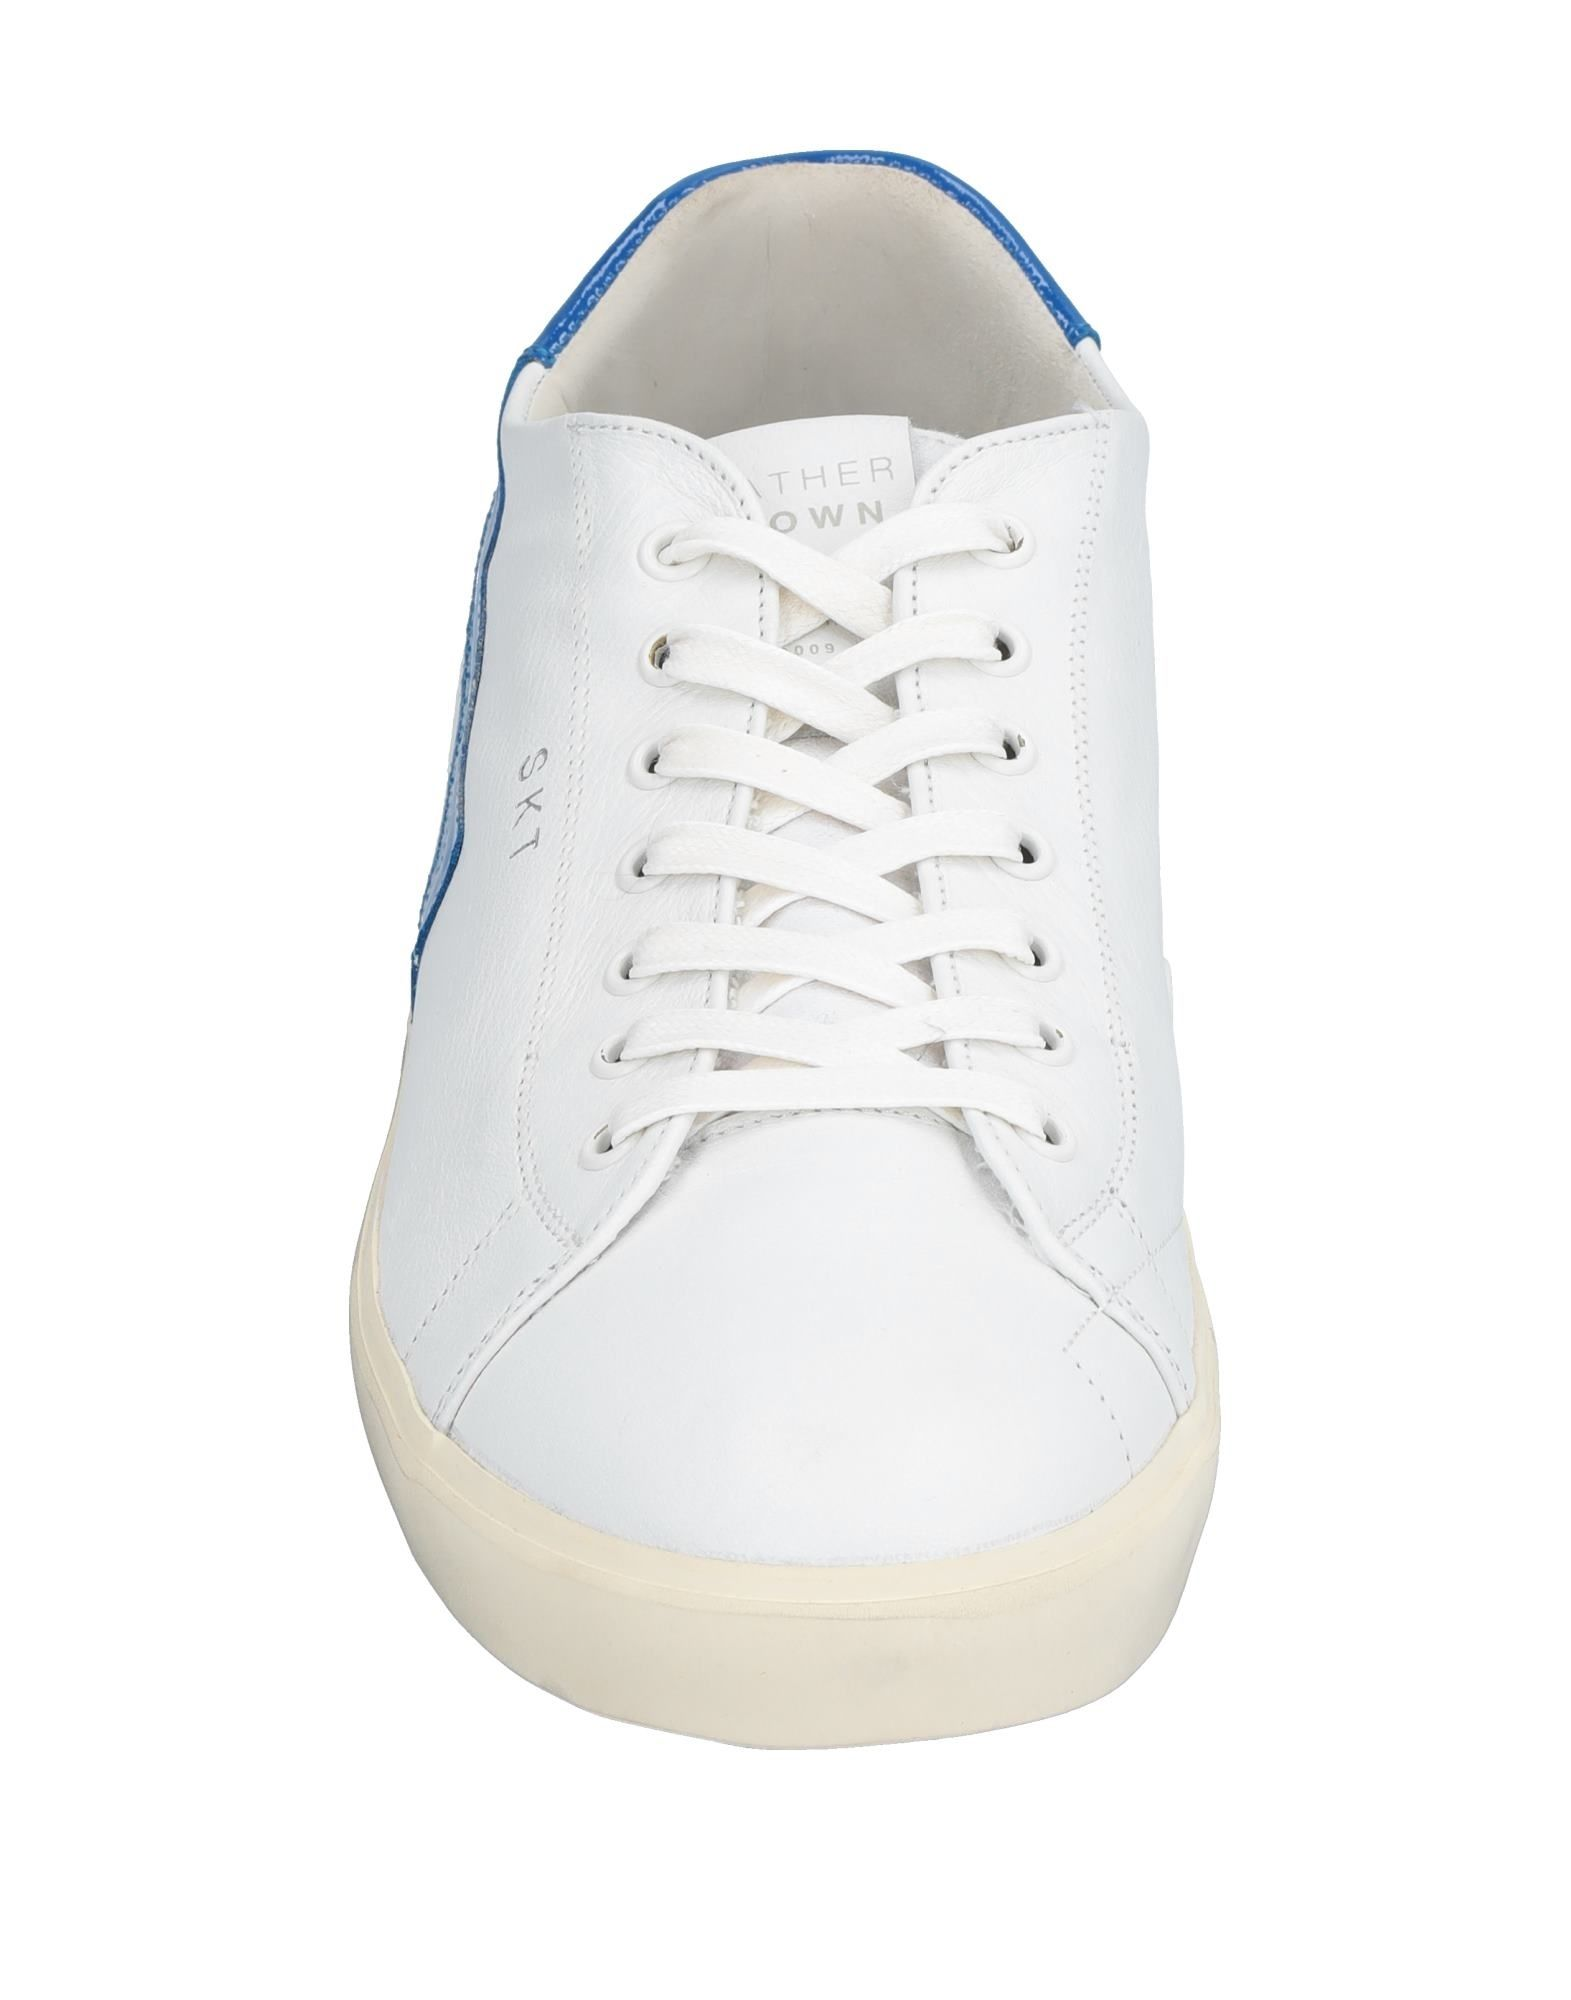 Leather Crown Sneakers Herren Herren Sneakers  11533852TU f3e0d1